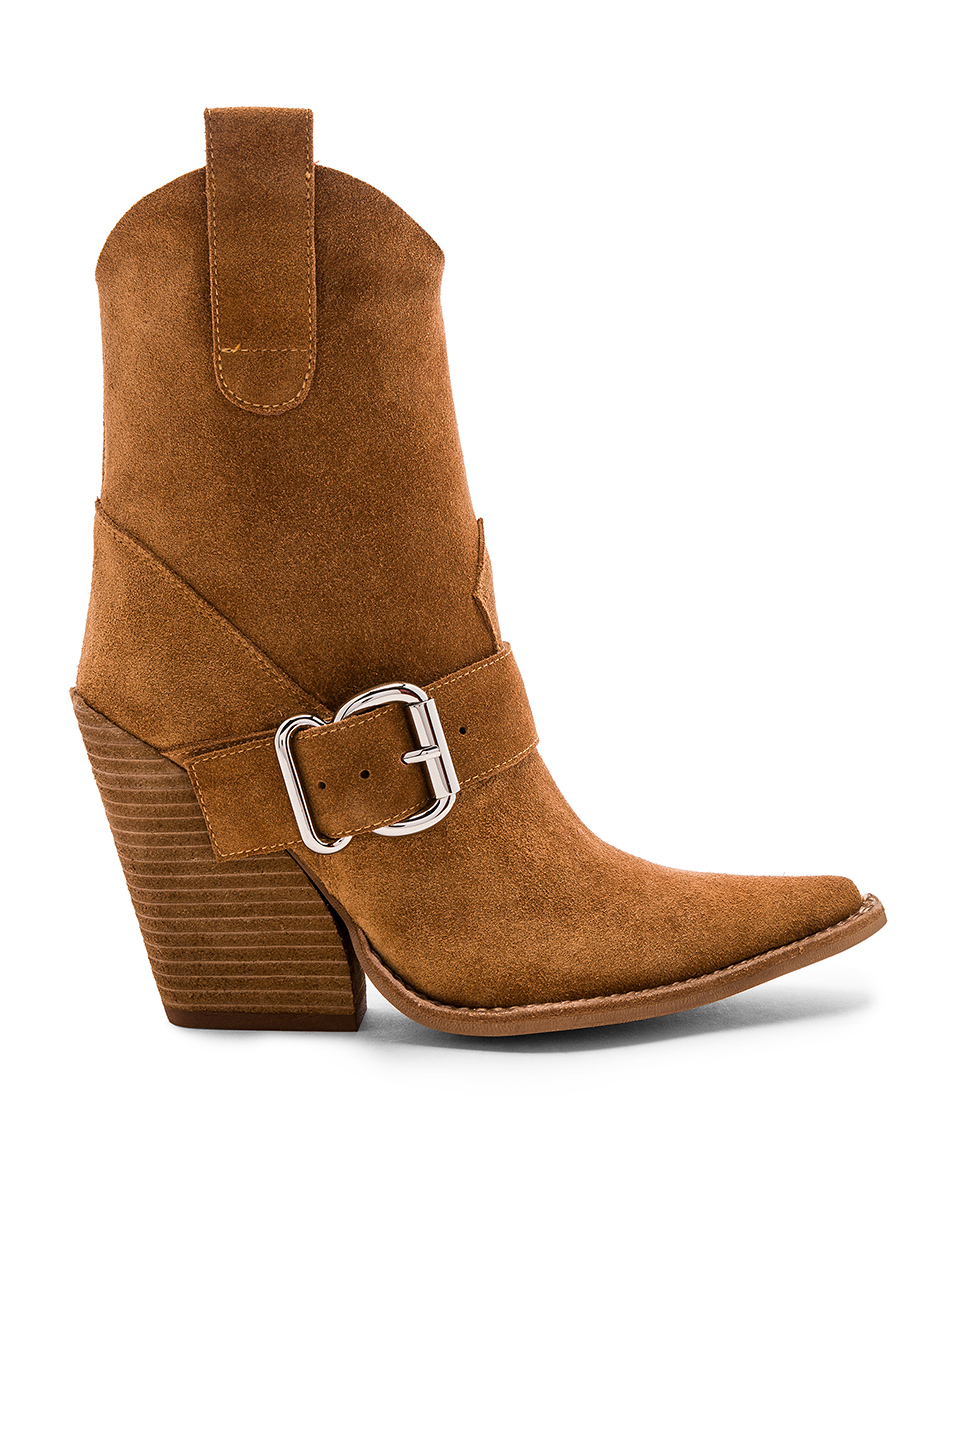 a2edae735abef5 Jeffrey Campbell Homage Boot  Jeffrey Campbell Homage Boot ...